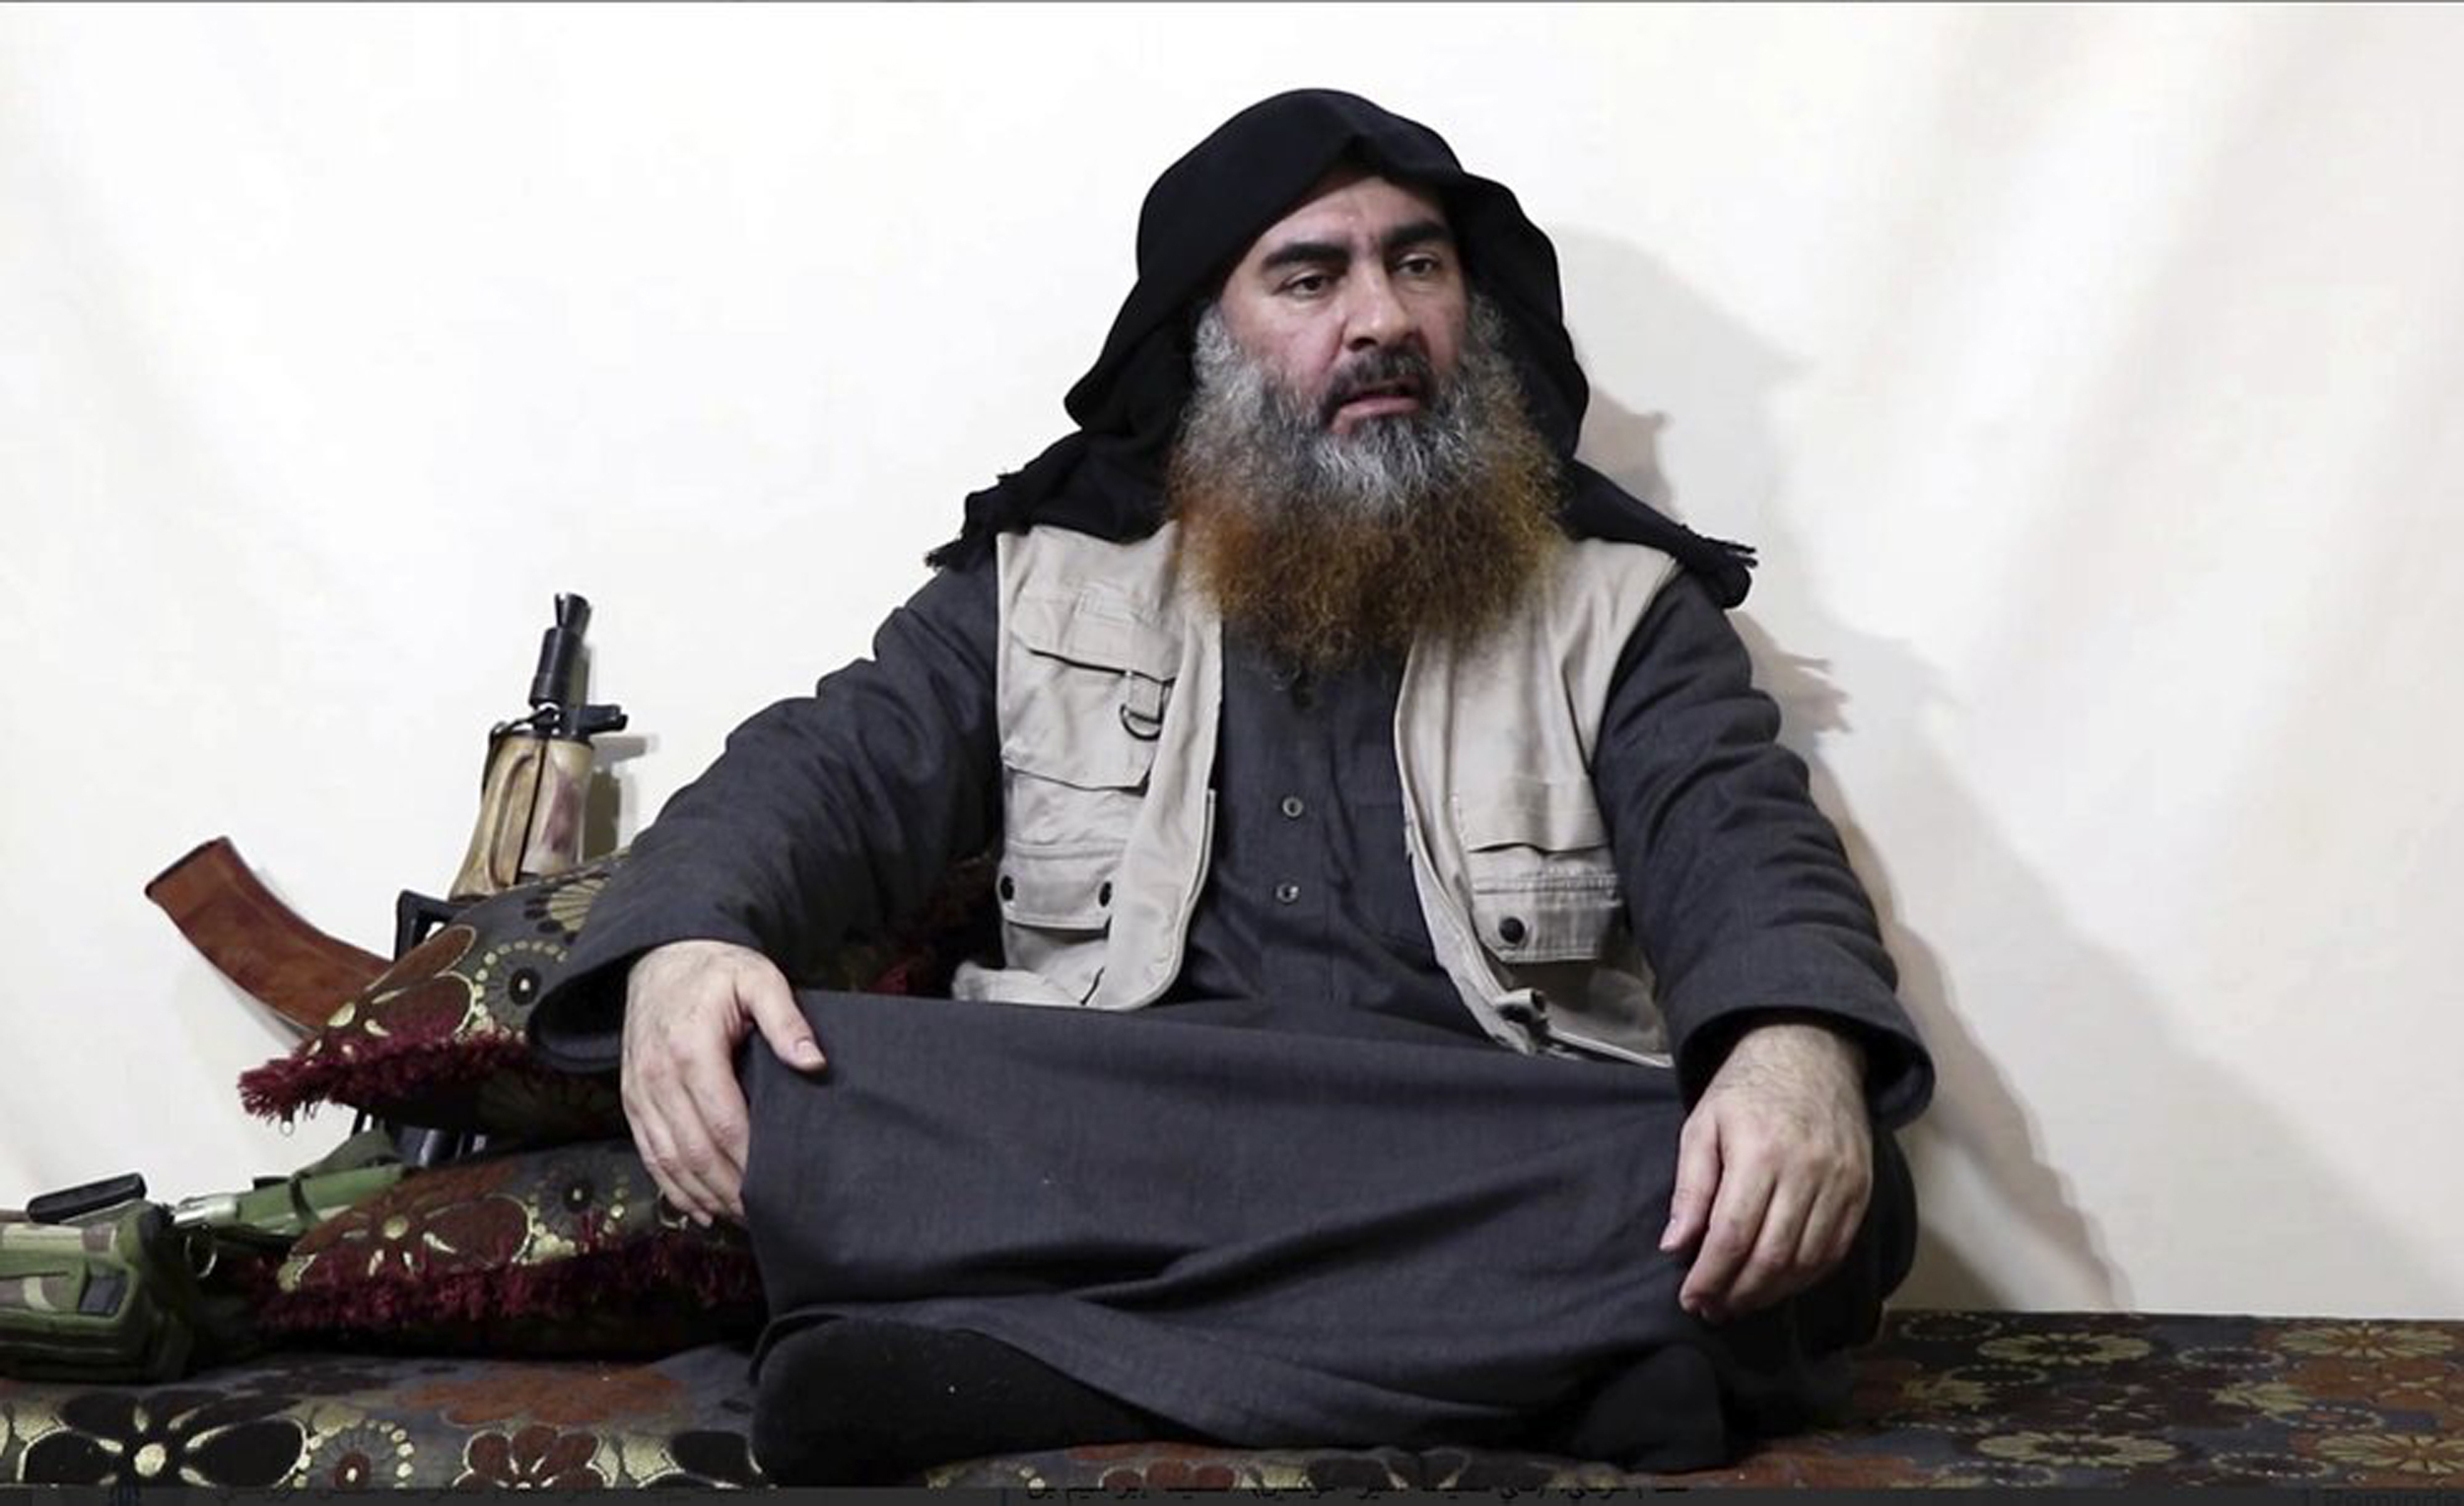 IS leader calls on fighters to free detained comrades